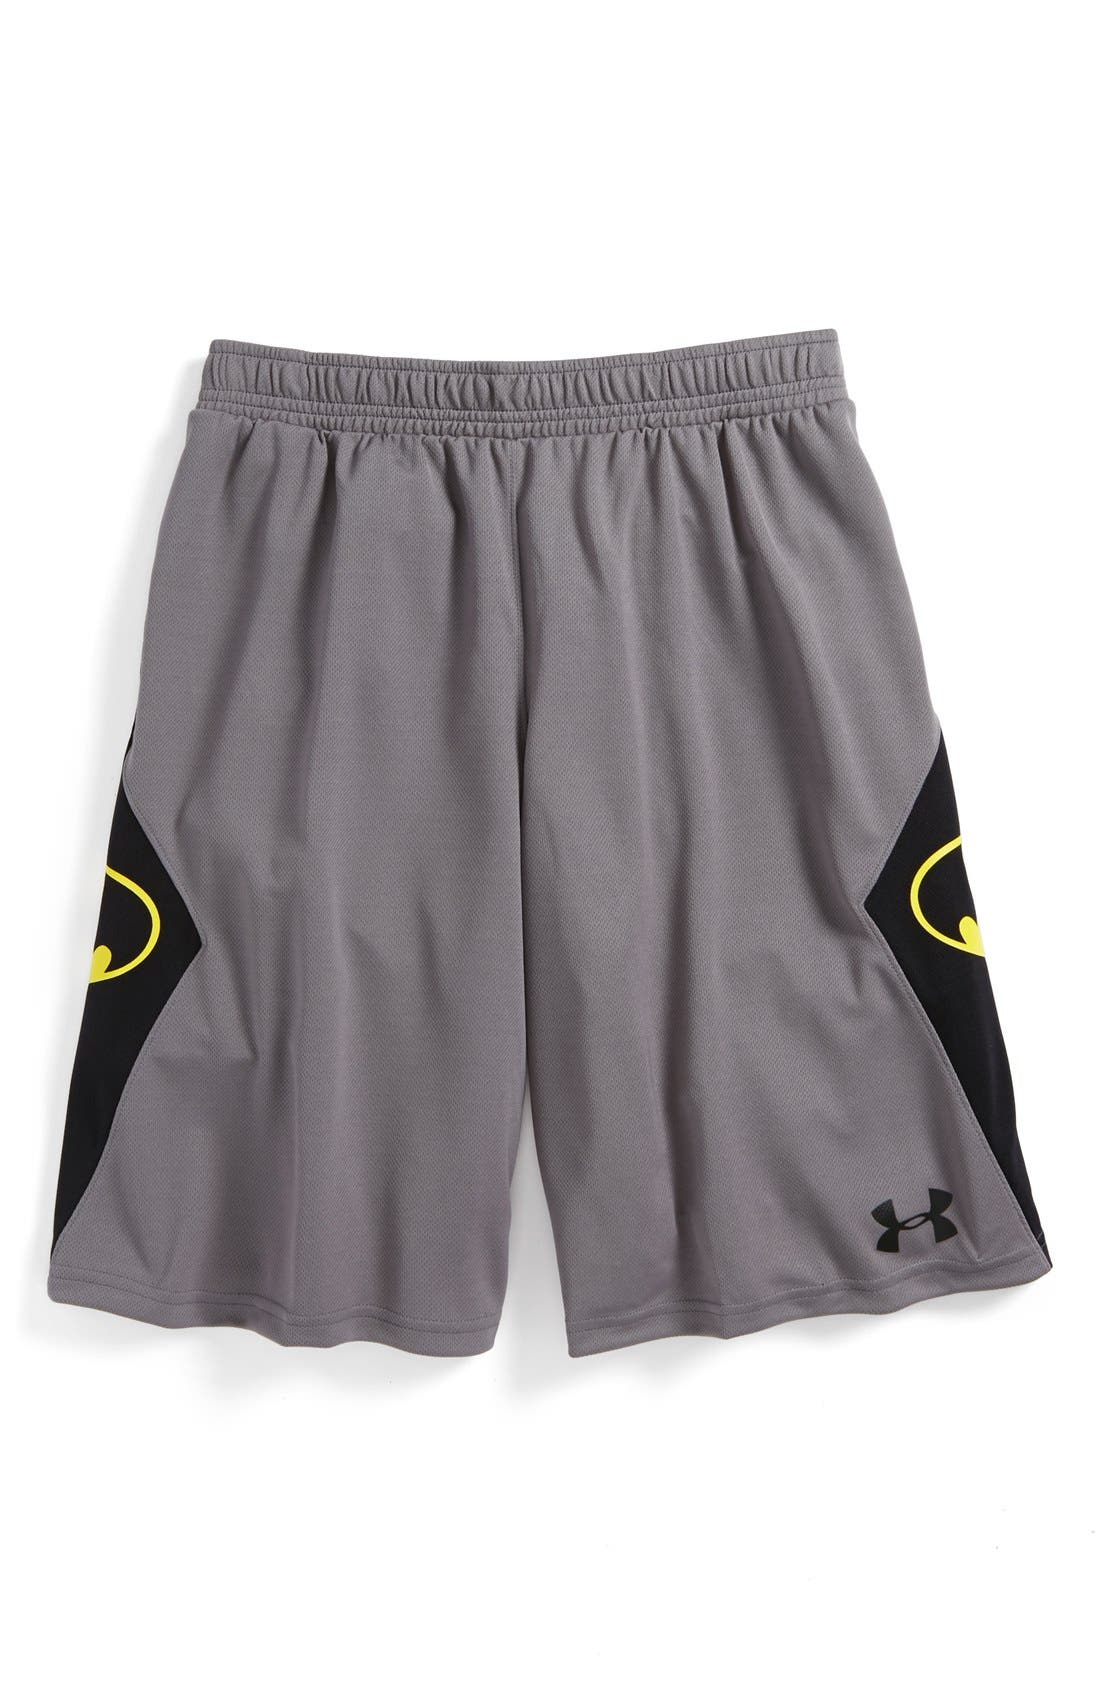 Alternate Image 2  - Under Armour 'Alter Ego - Batman' Shorts (Little Boys & Big Boys)